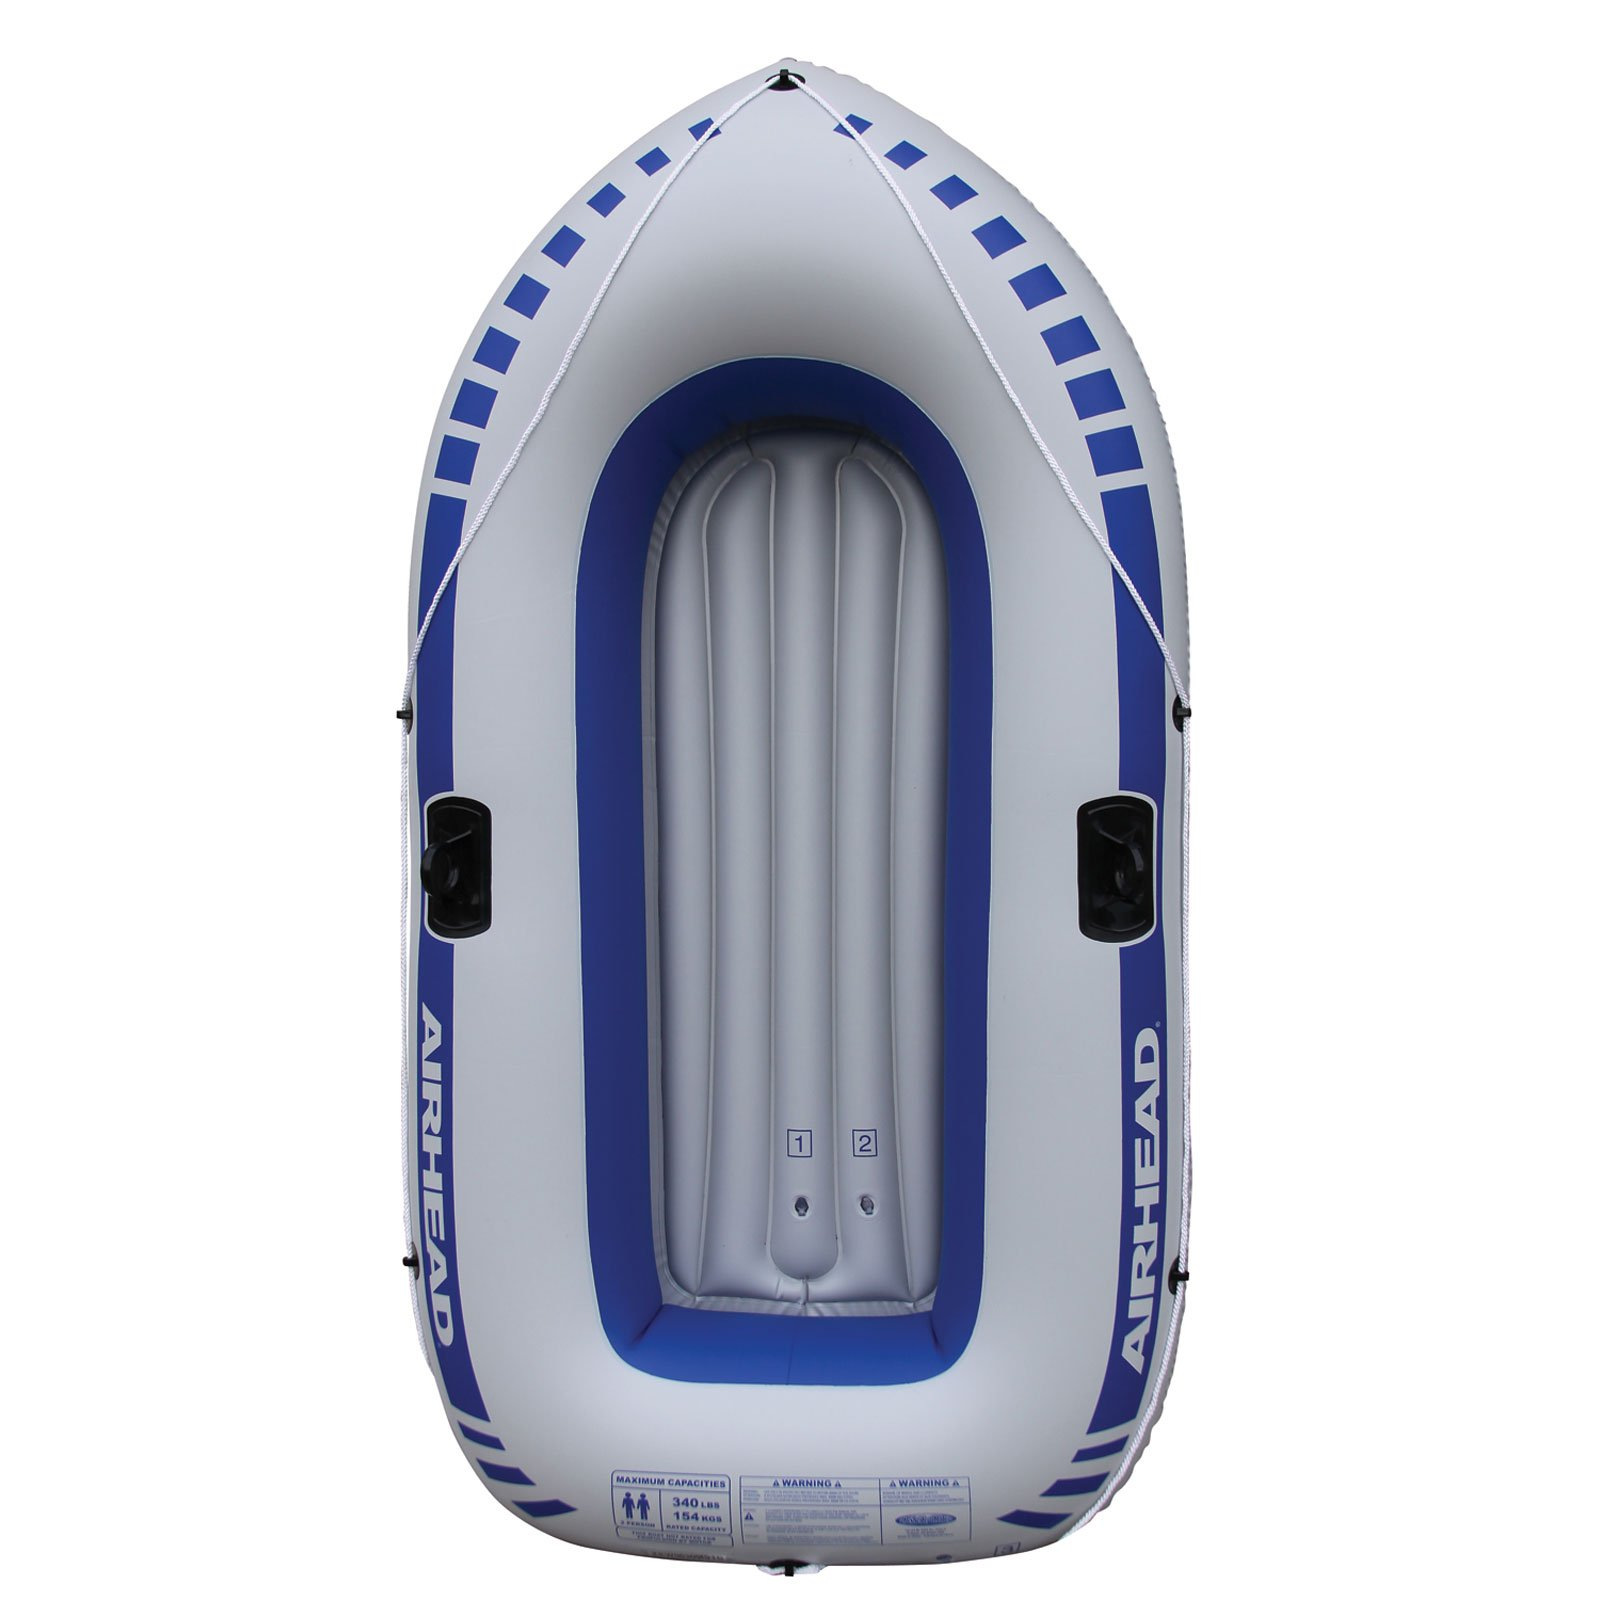 Airhead Inflatable Boat, 2 person by Airhead (Image #1)